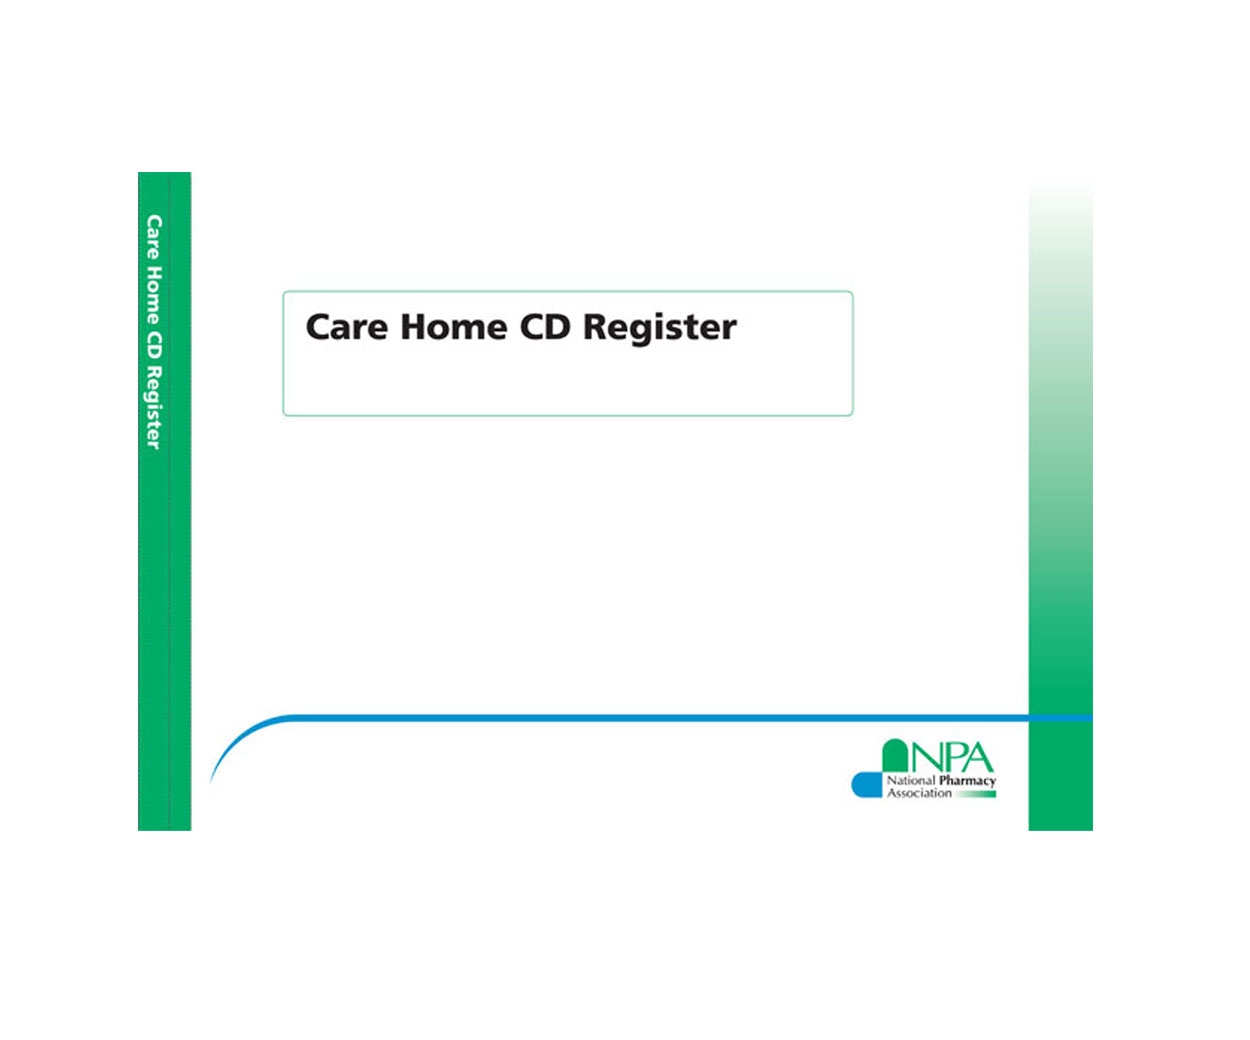 NPA Care Home CD Register